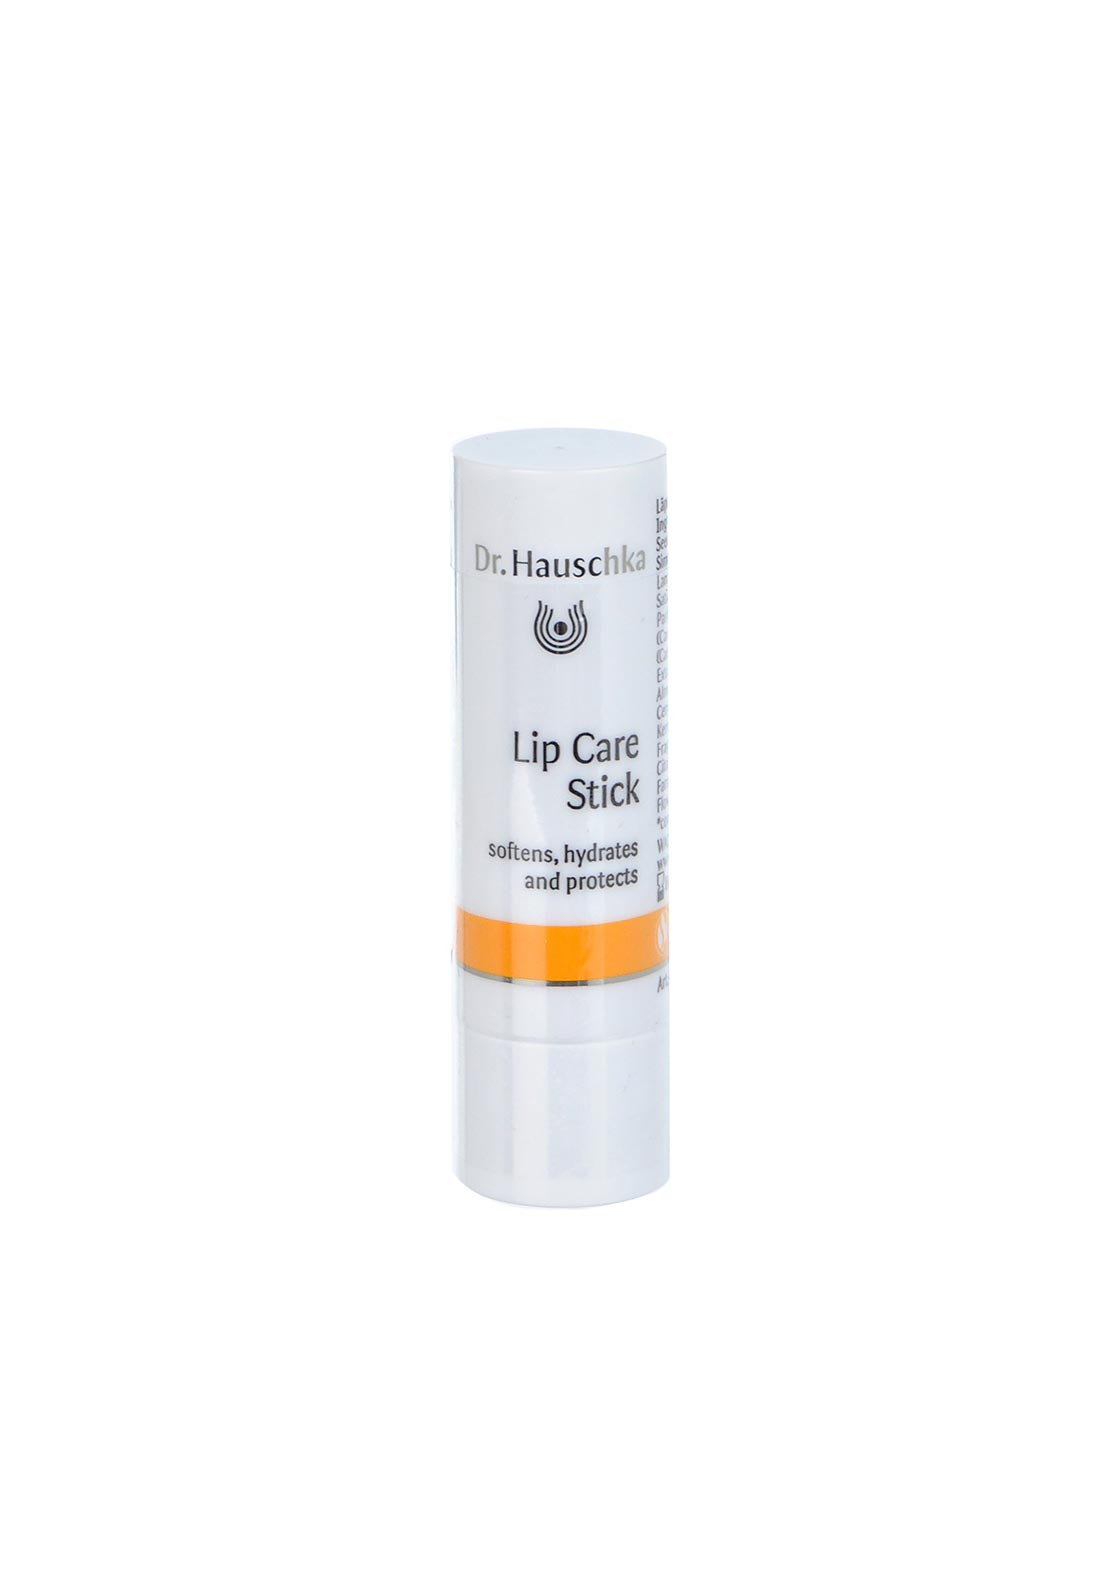 Dr. Hauschka Lip Care Stick, 0.17oz